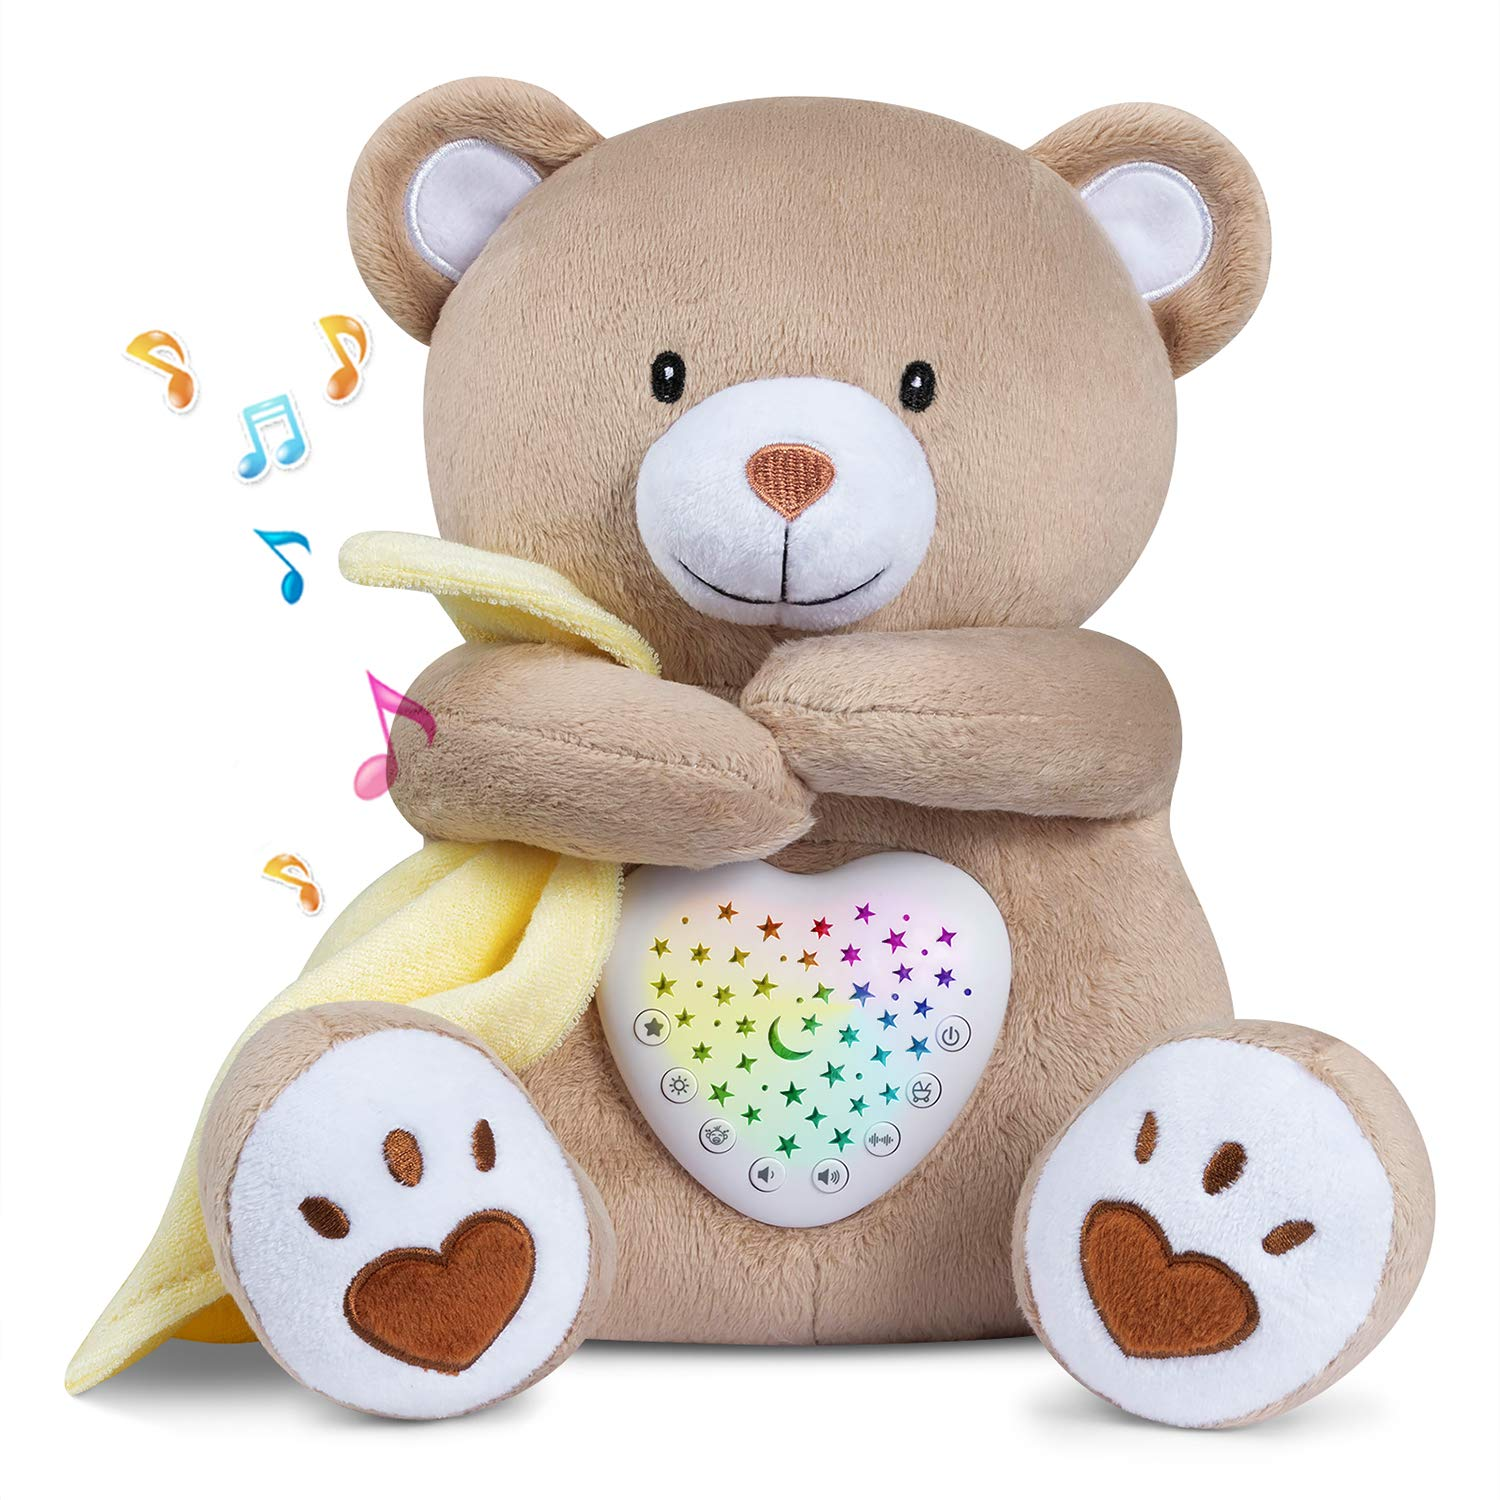 BEREST Rechargeable Sleep Soother Heartbeat Dreamy Bear, Baby Cry Sensor Lullabies & Shusher White Noise Machine, Nursery Decor Night Light Projector, Toddler Crib Sleeping Aid Baby Shower Gifts Teddy